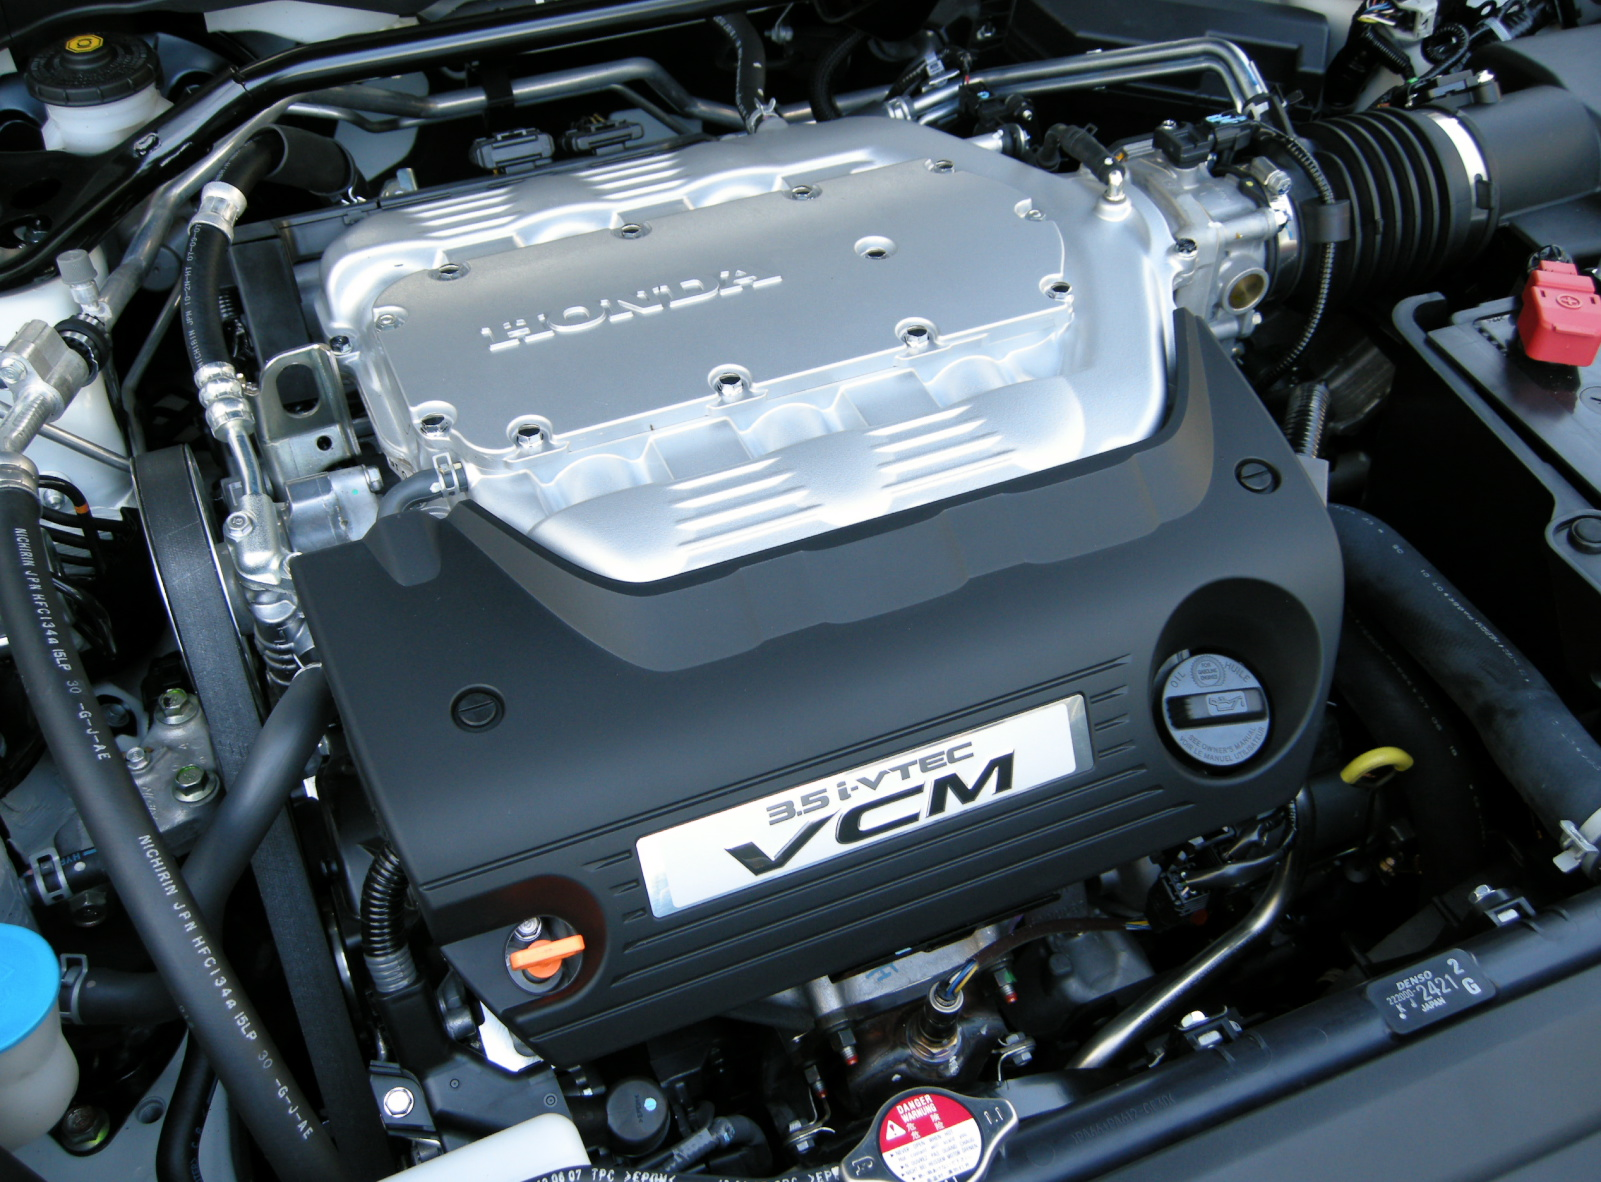 File Honda J35a Vcm Engine Jpg Wikimedia Commons